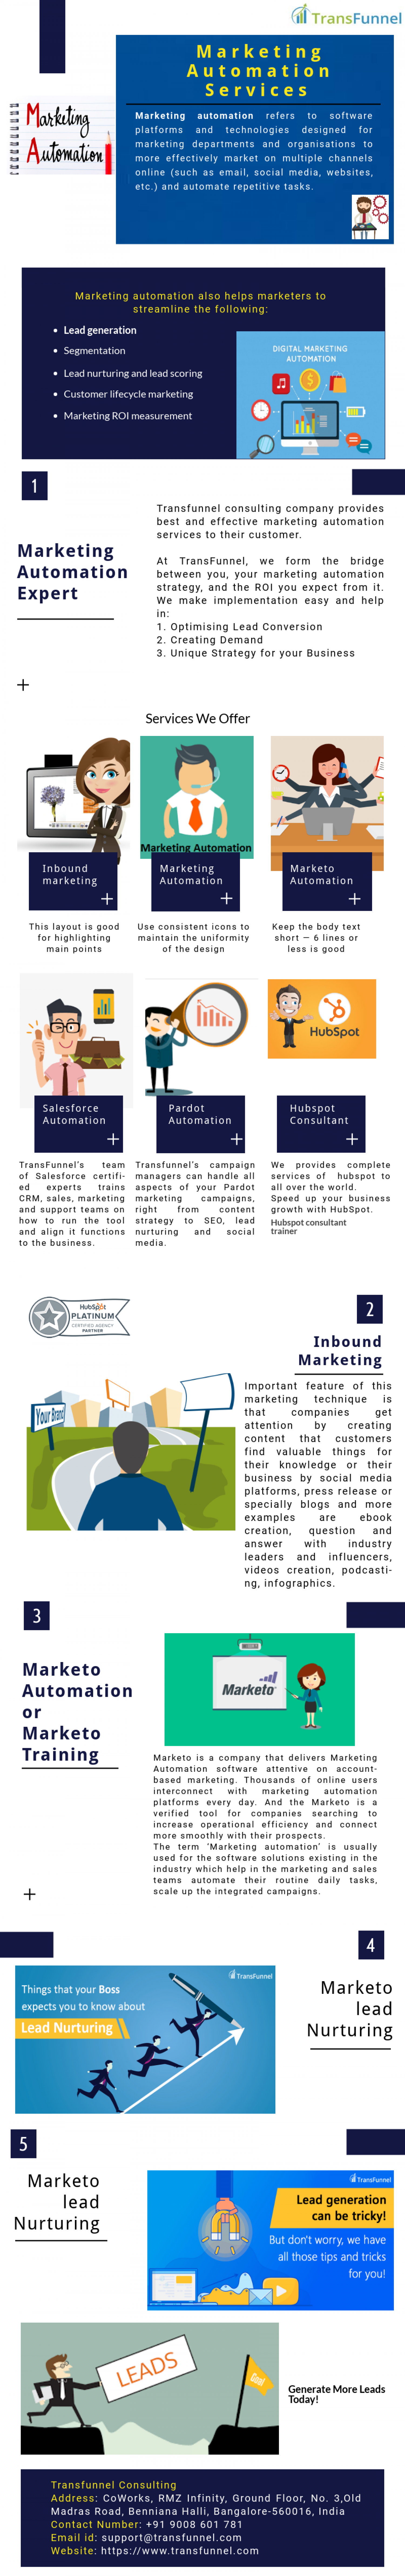 Marketing Automation Services by Transfunnel Infographic